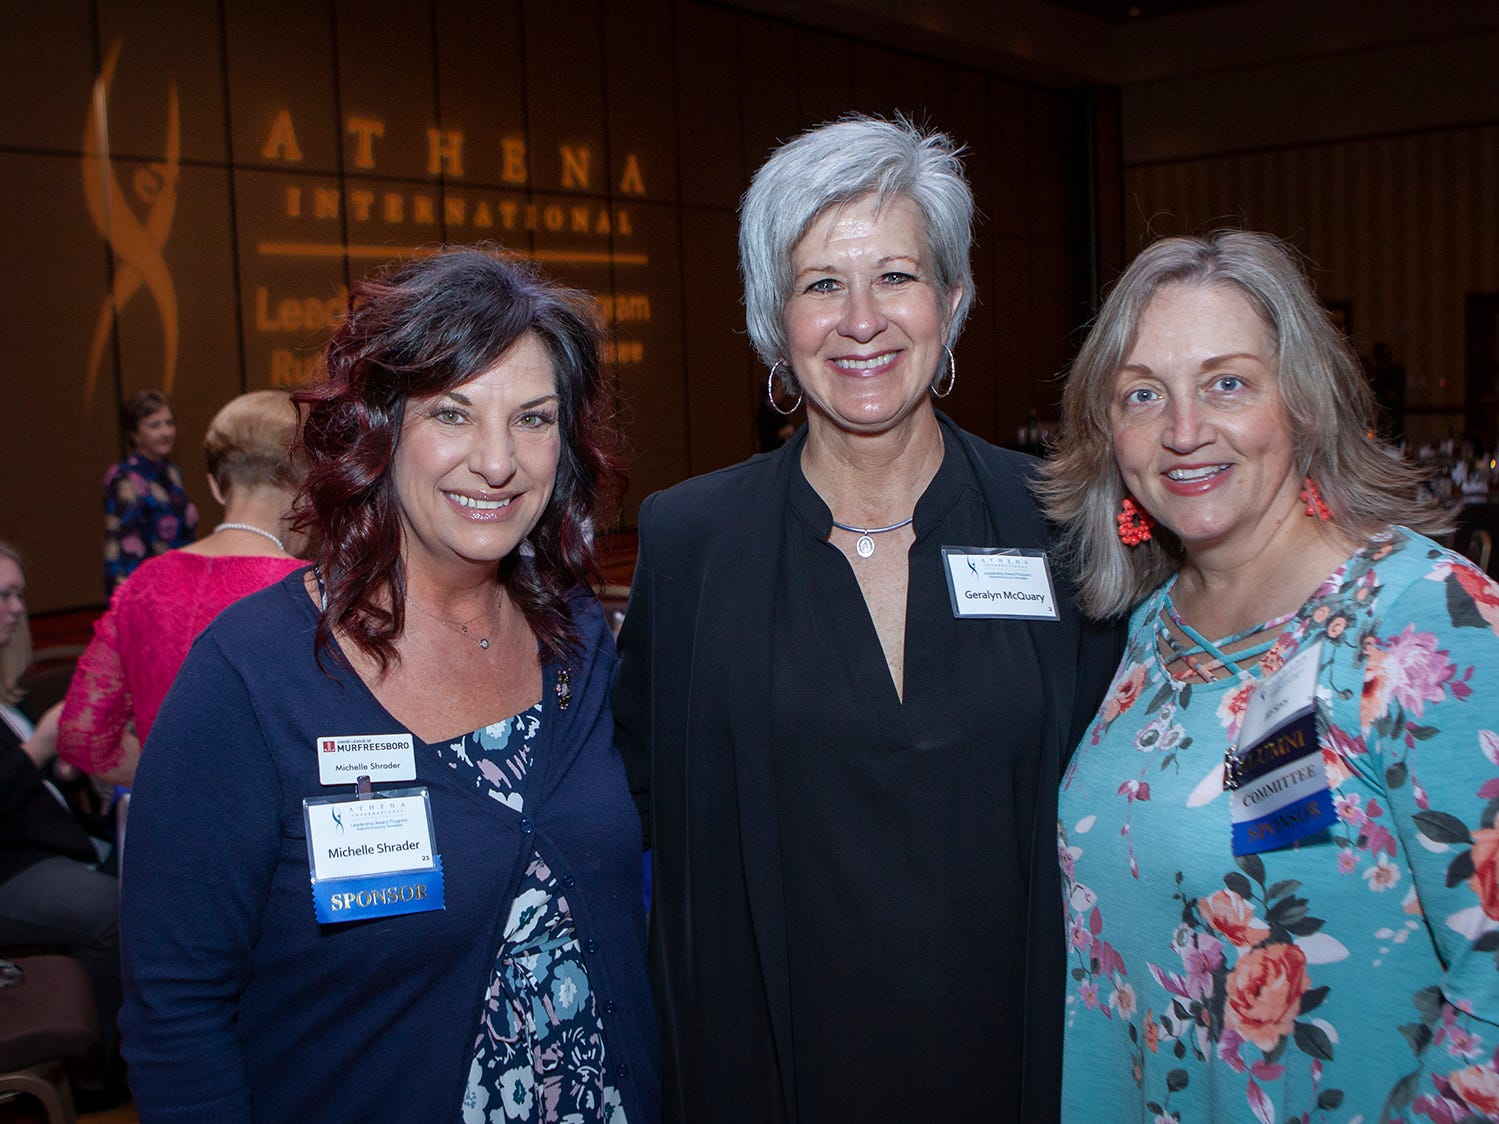 Michelle Shrader, Geralyn McQuary and Jill Spry at the annual ATHENA Leadership Awards, hosted by Rutherford Cable Friday, April 12, 2019 at Embassy Suites Murfreesboro.